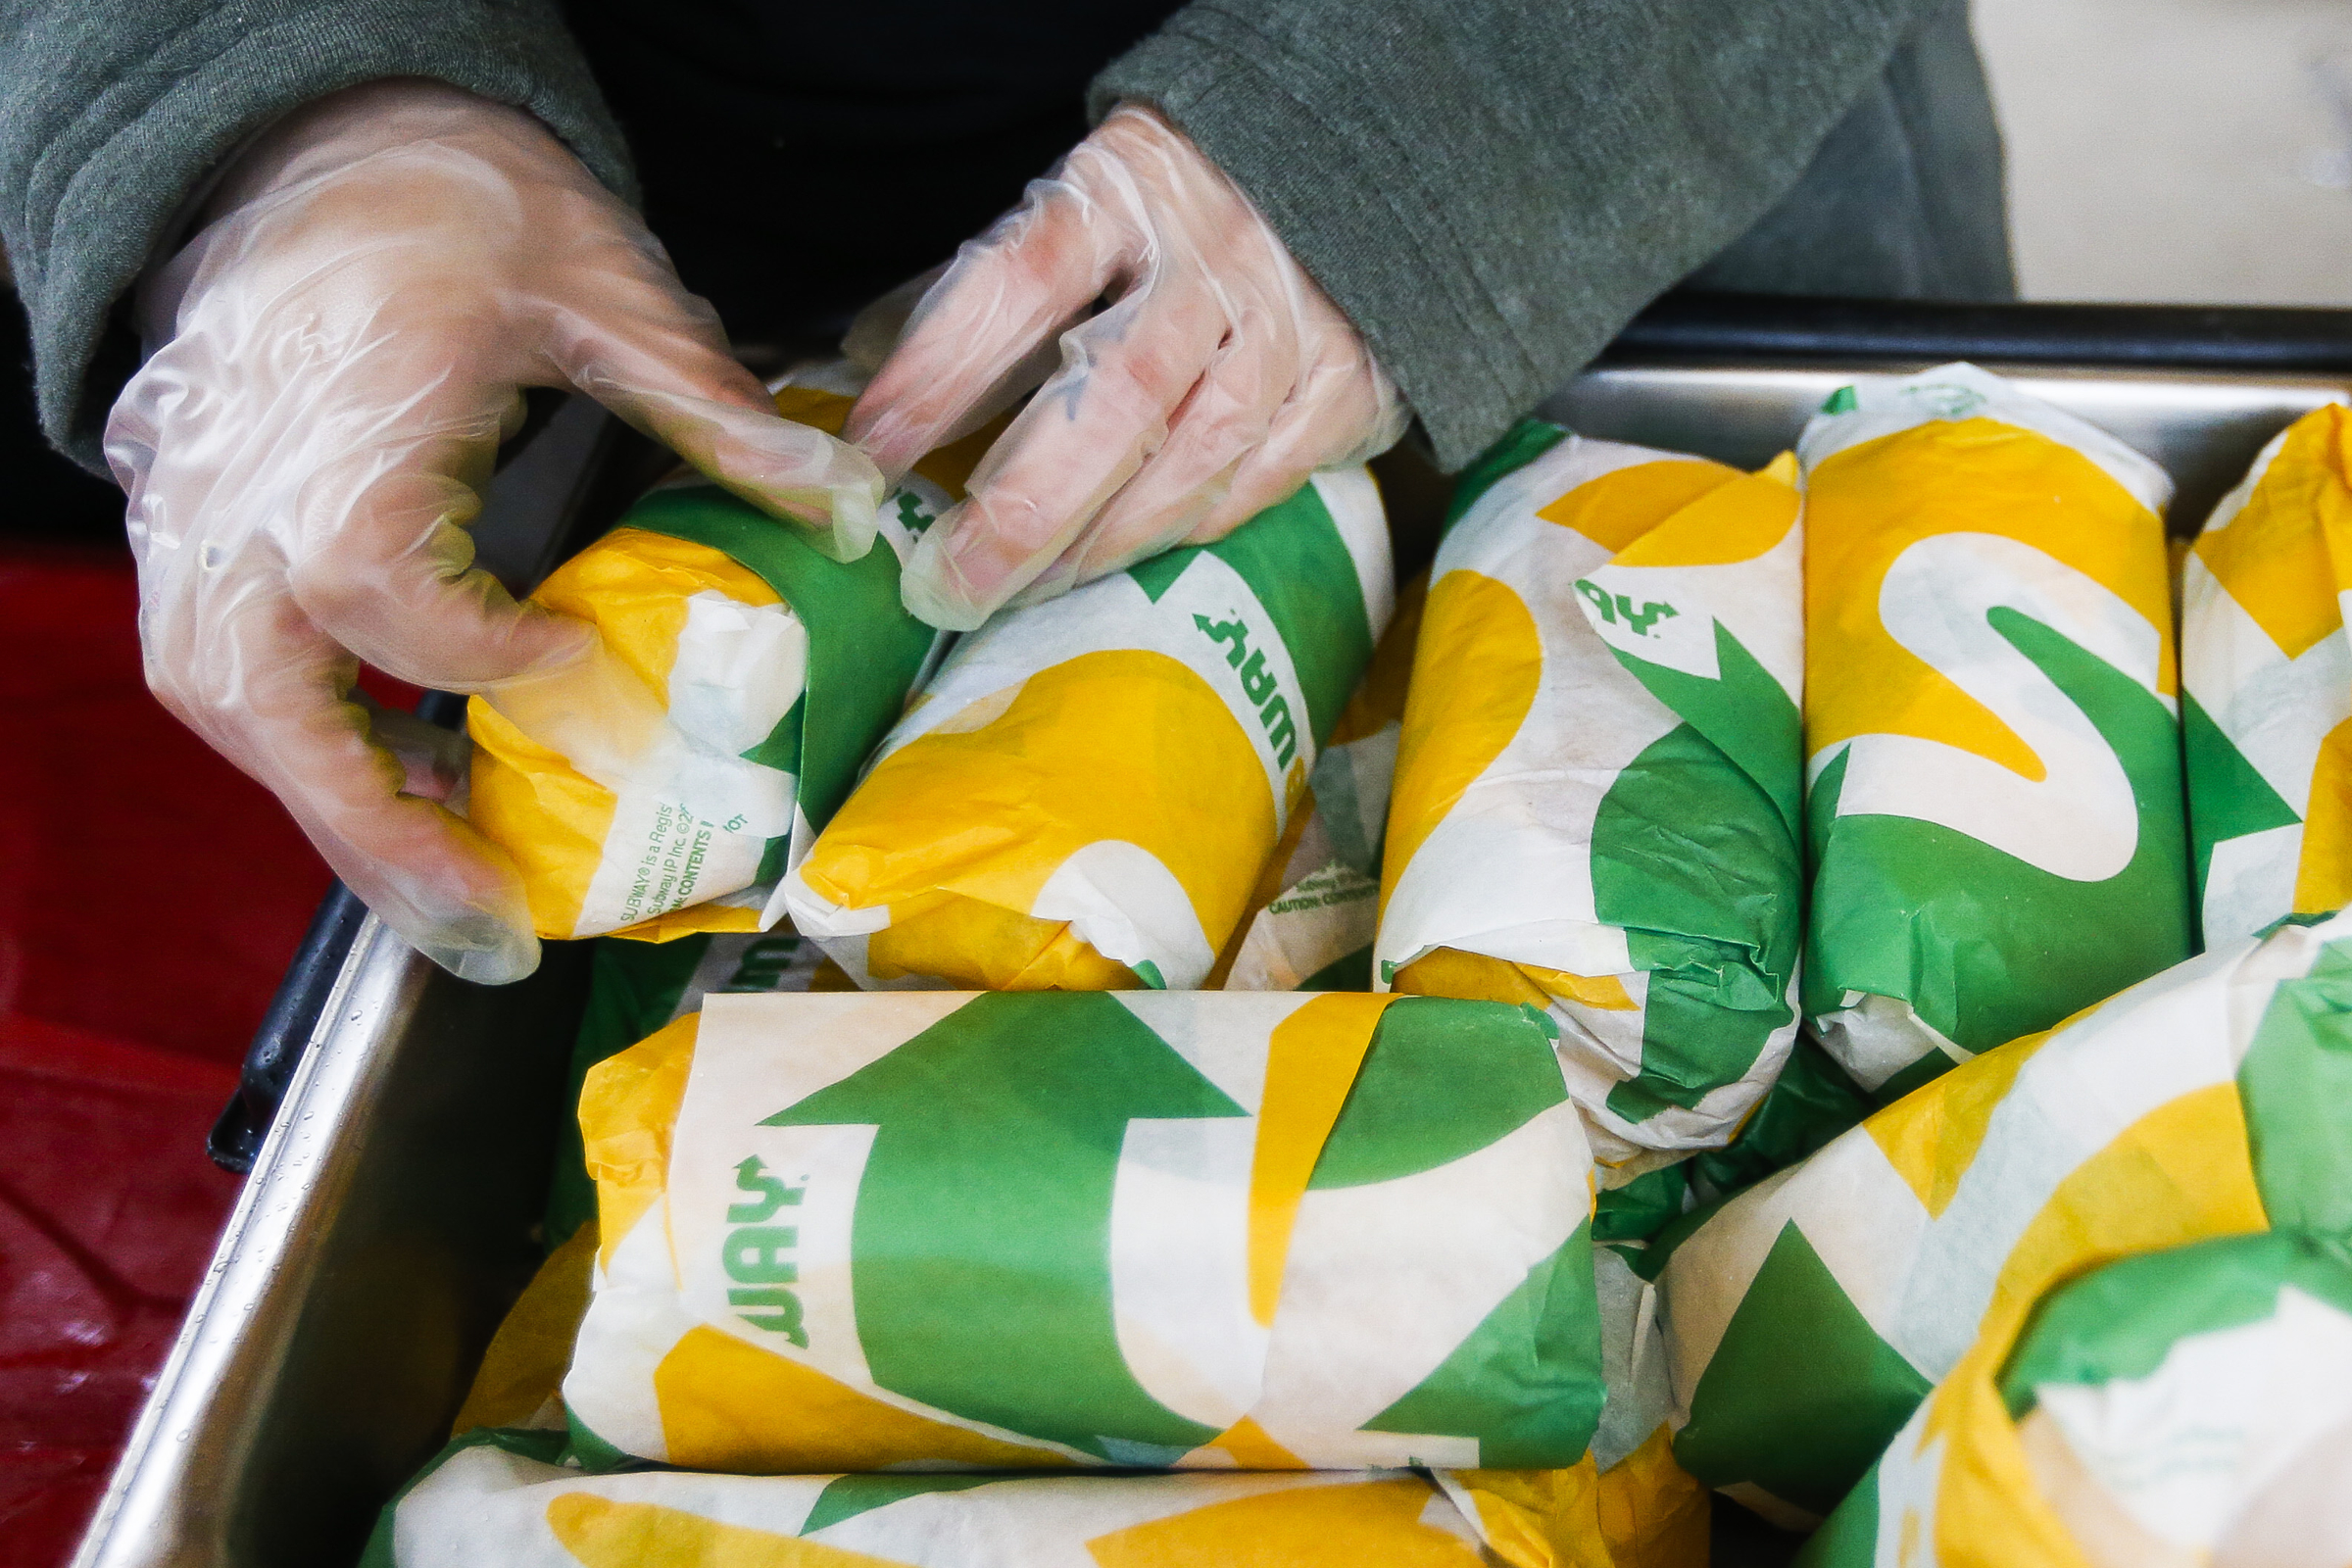 A Subway employee hands out free sandwiches during the 8th annual Subway Day at Pioneer Park in Salt Lake City on Tuesday, May 16, 2017. Subway Restaurants in Utah teamed with the Rescue Mission to provide the sandwiches and other services for homeless individuals.